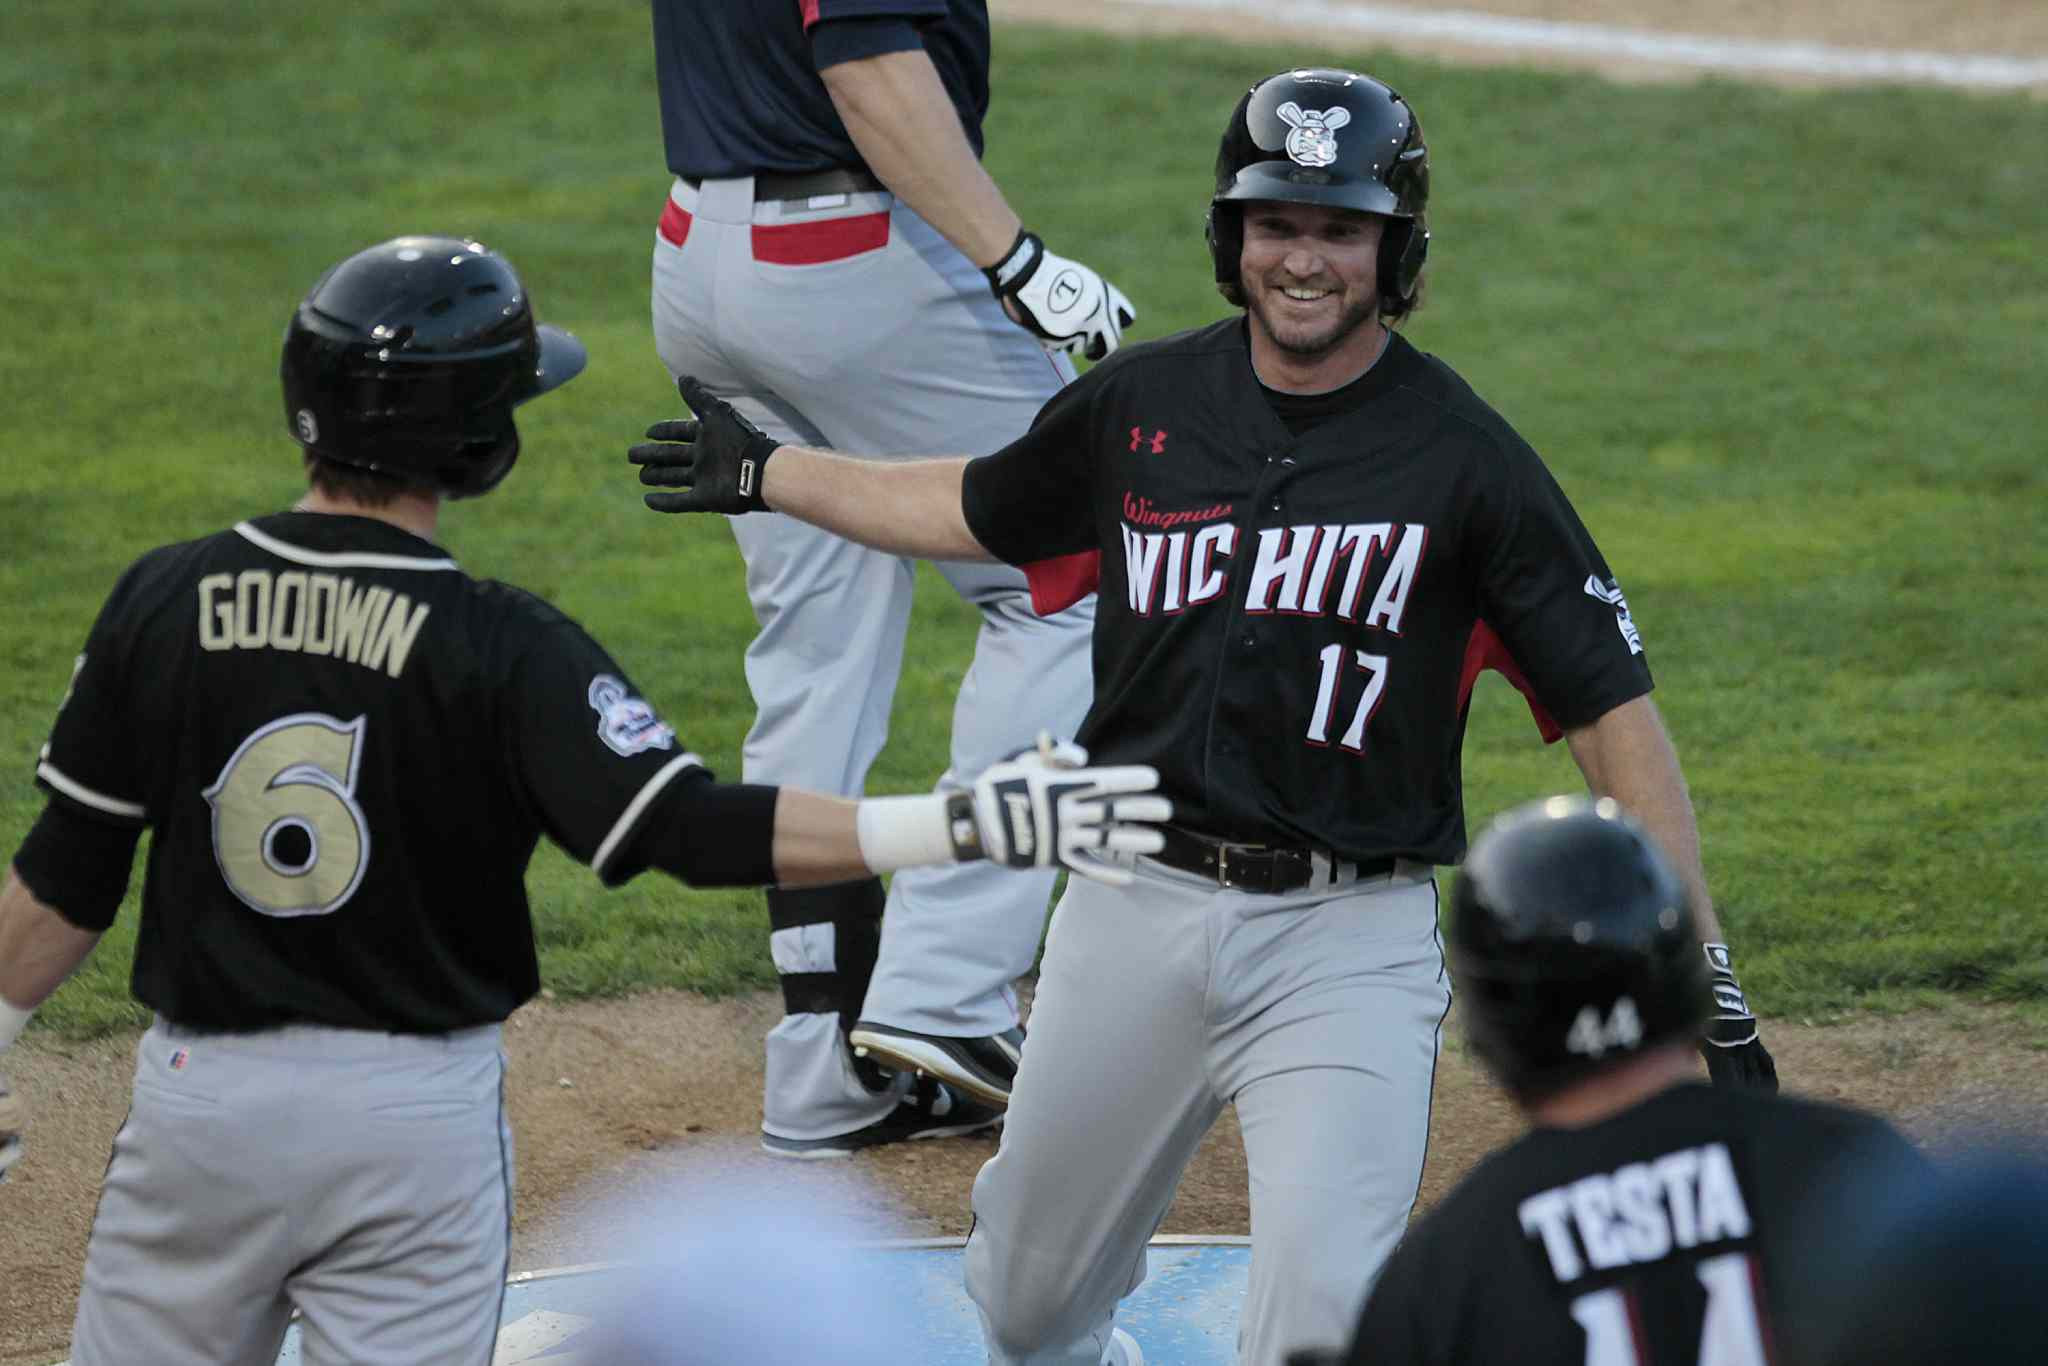 Witchita Wingnuts' Patrick Mincey (#17) hits a home-run in the 2014 American Association All-Star game in Winnipeg Tuesday.